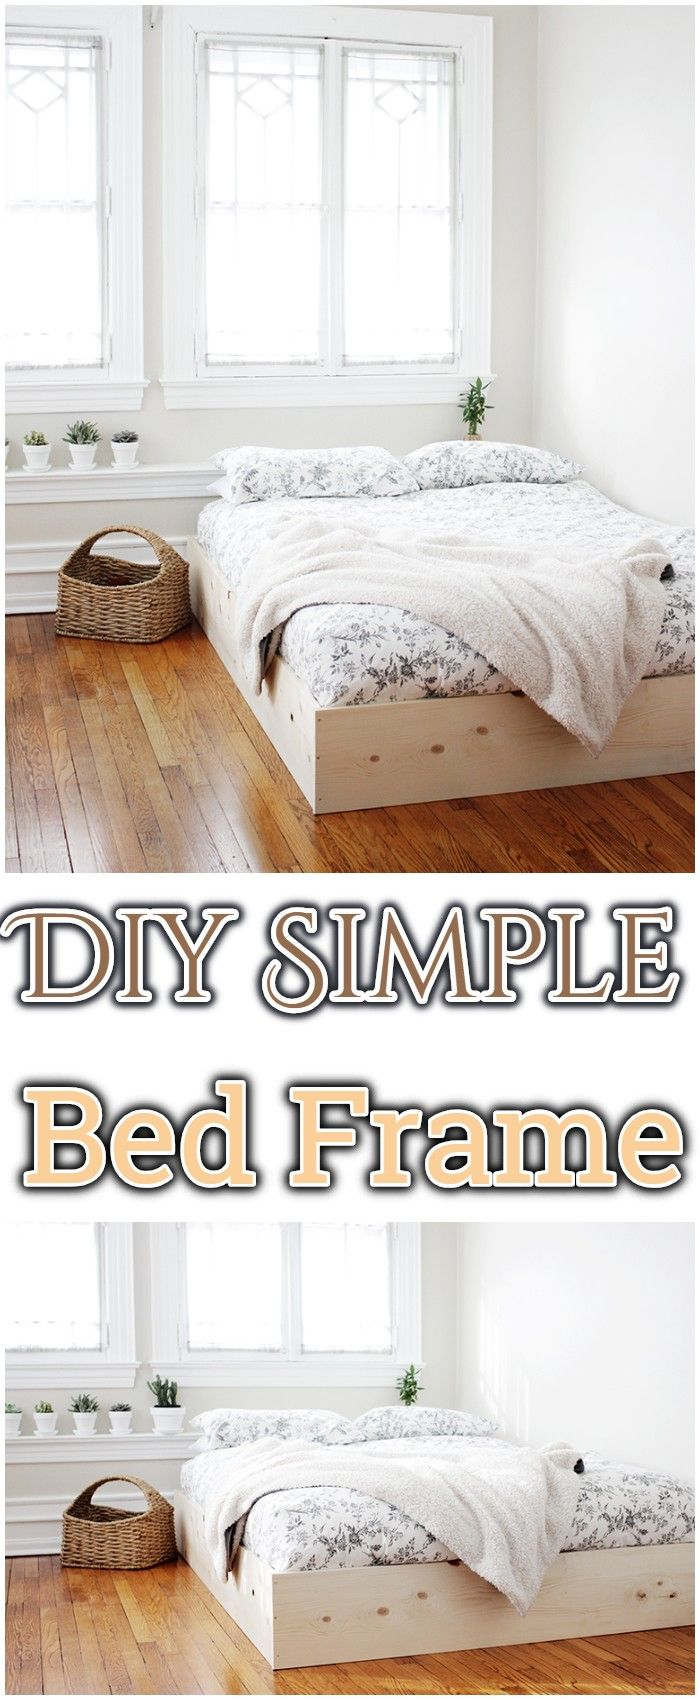 How To Build Diy Bed Frames Queen Bed Frame Diy Simple Bed Frame